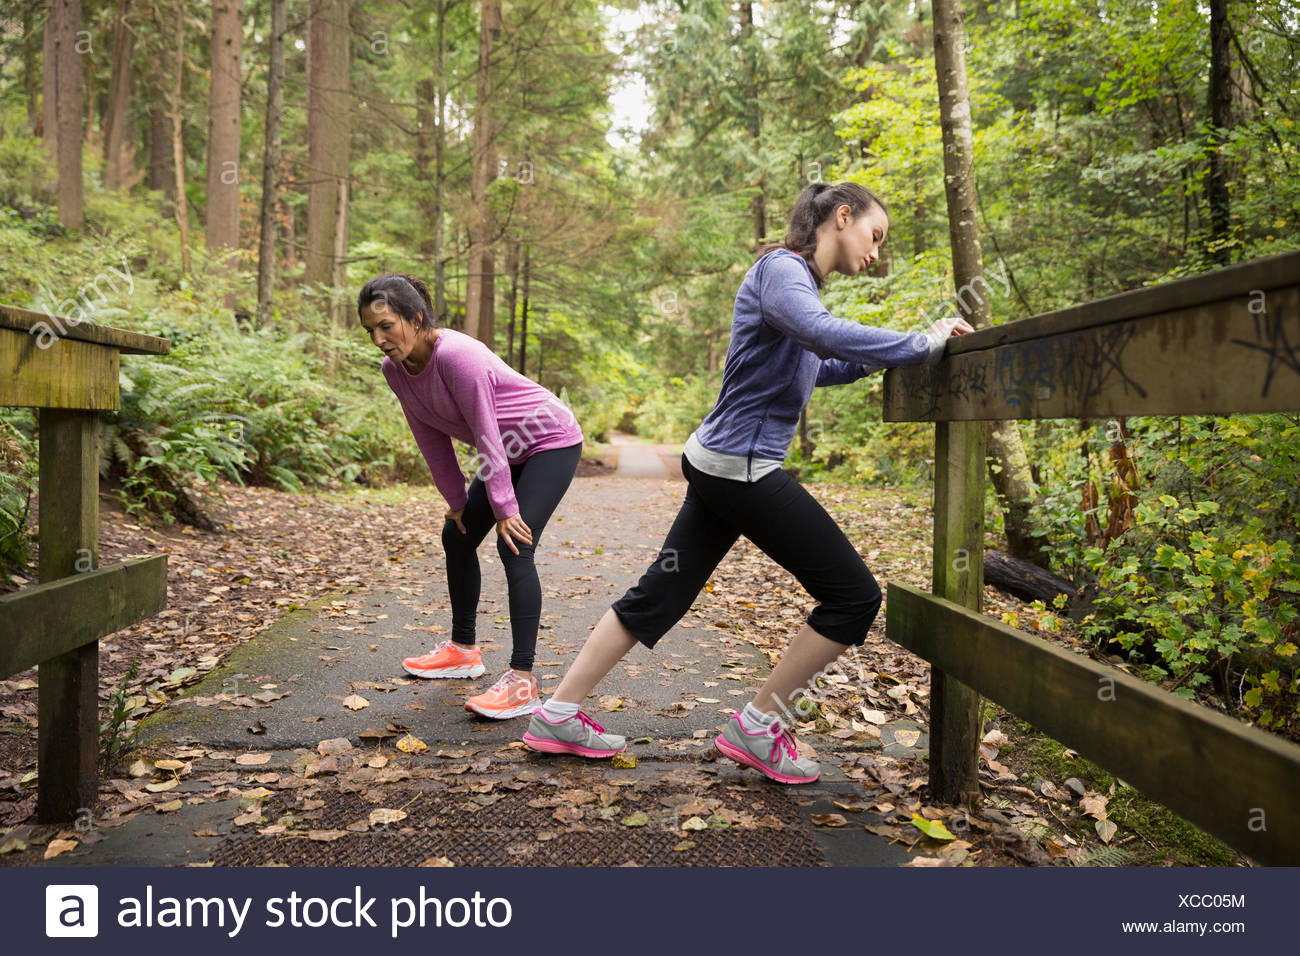 Mother and daughter stretching after run in woods - Stock Image